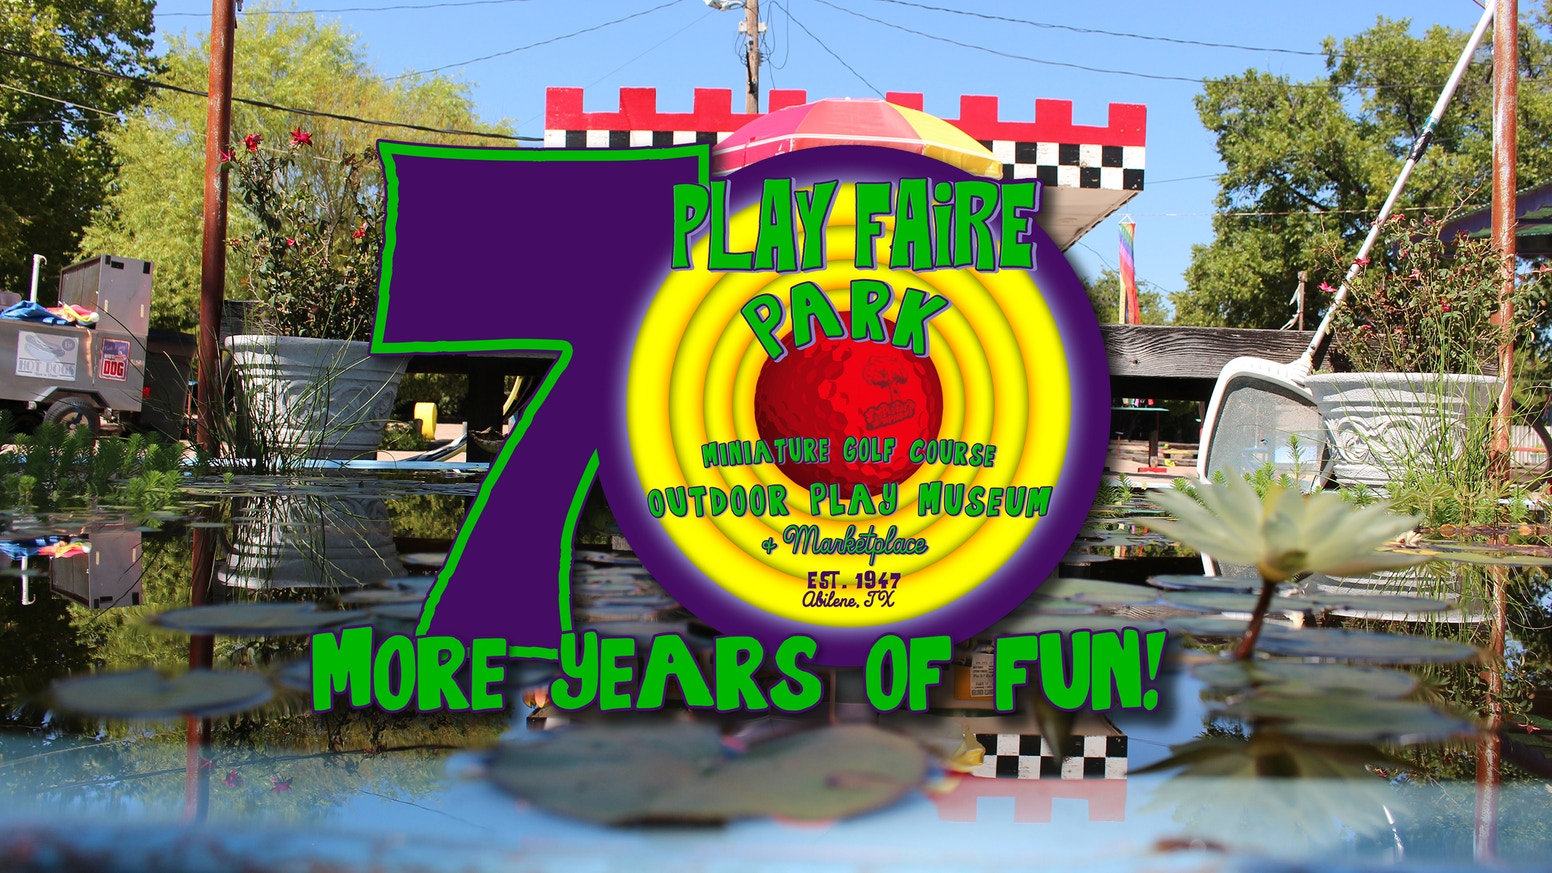 Polishing a local treasure, so it can keep on shining for 70 More Years of Fun. Join us on our journey as a Friend of Play Faire Park!